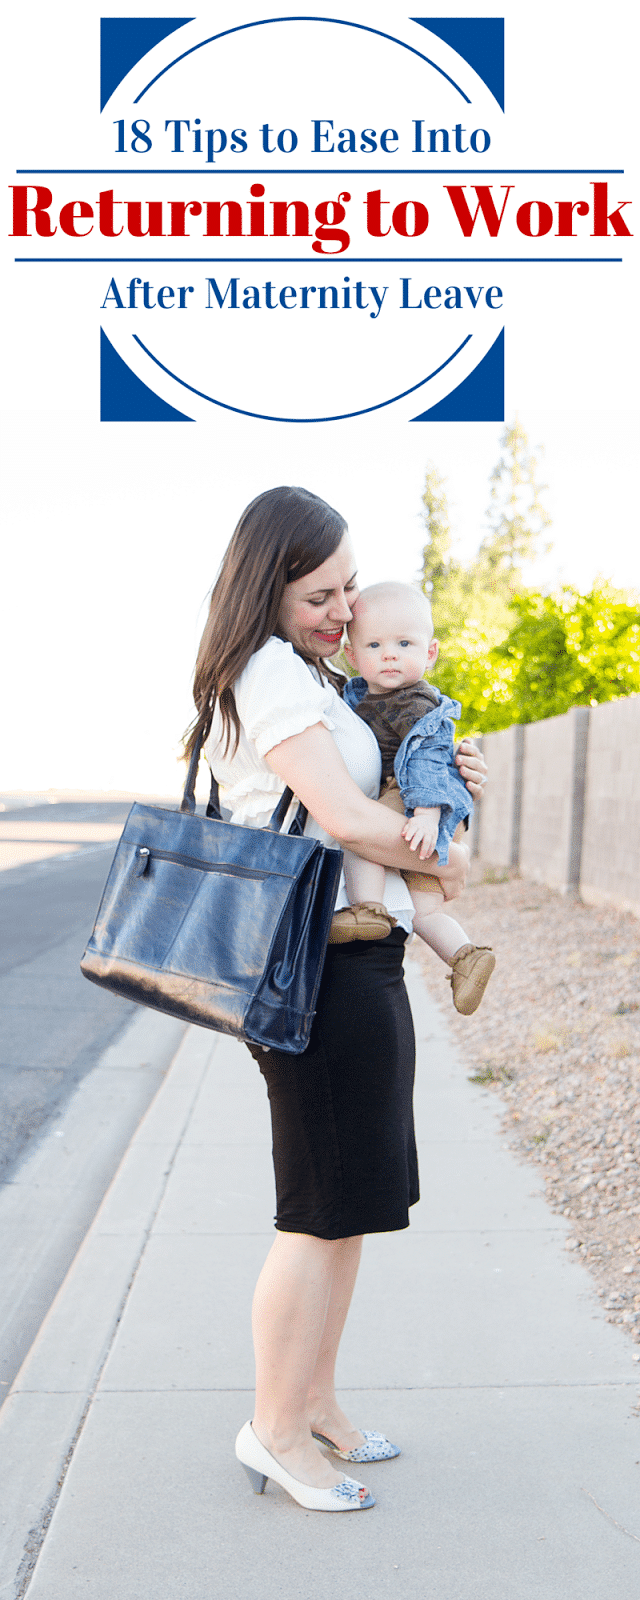 When I left for maternity leave on a Friday knowing I'd be induced on  Monday I was afraid. Not so much of labor and delivery as a first time mom,  ...